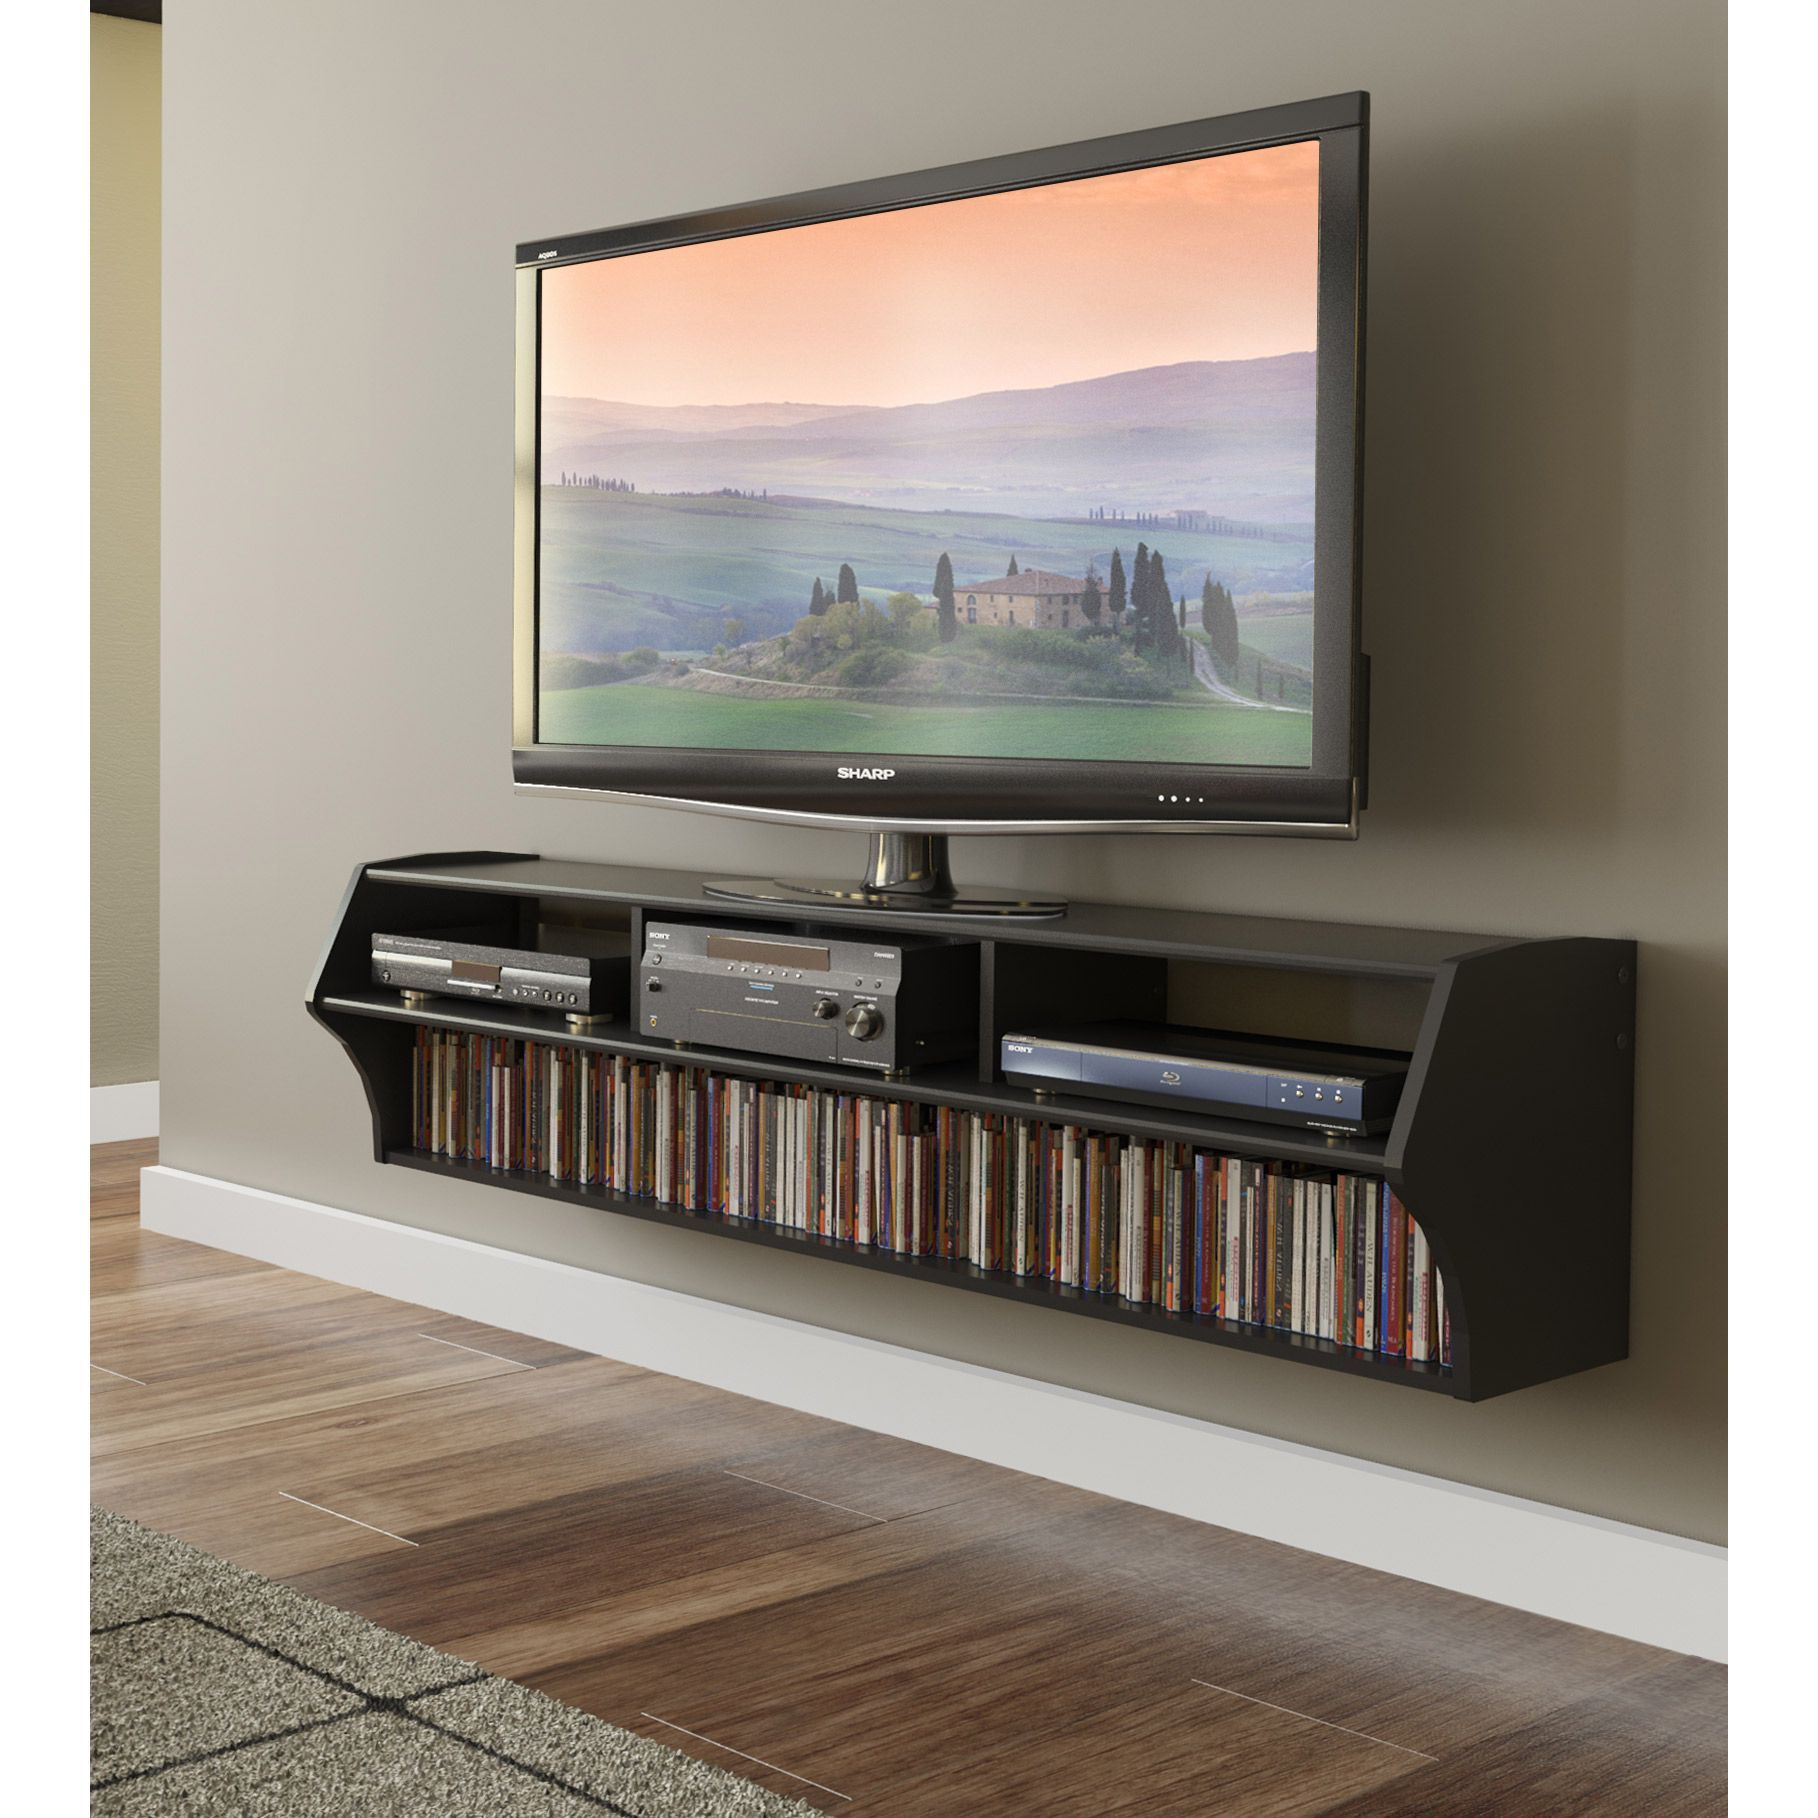 Black Altus Plus 58 in Floating TV Stand Media Console Storage Shelf Flat  Screen Home Garden Furniture Entertainment Units Stands An elegant way to display your television this modern floating